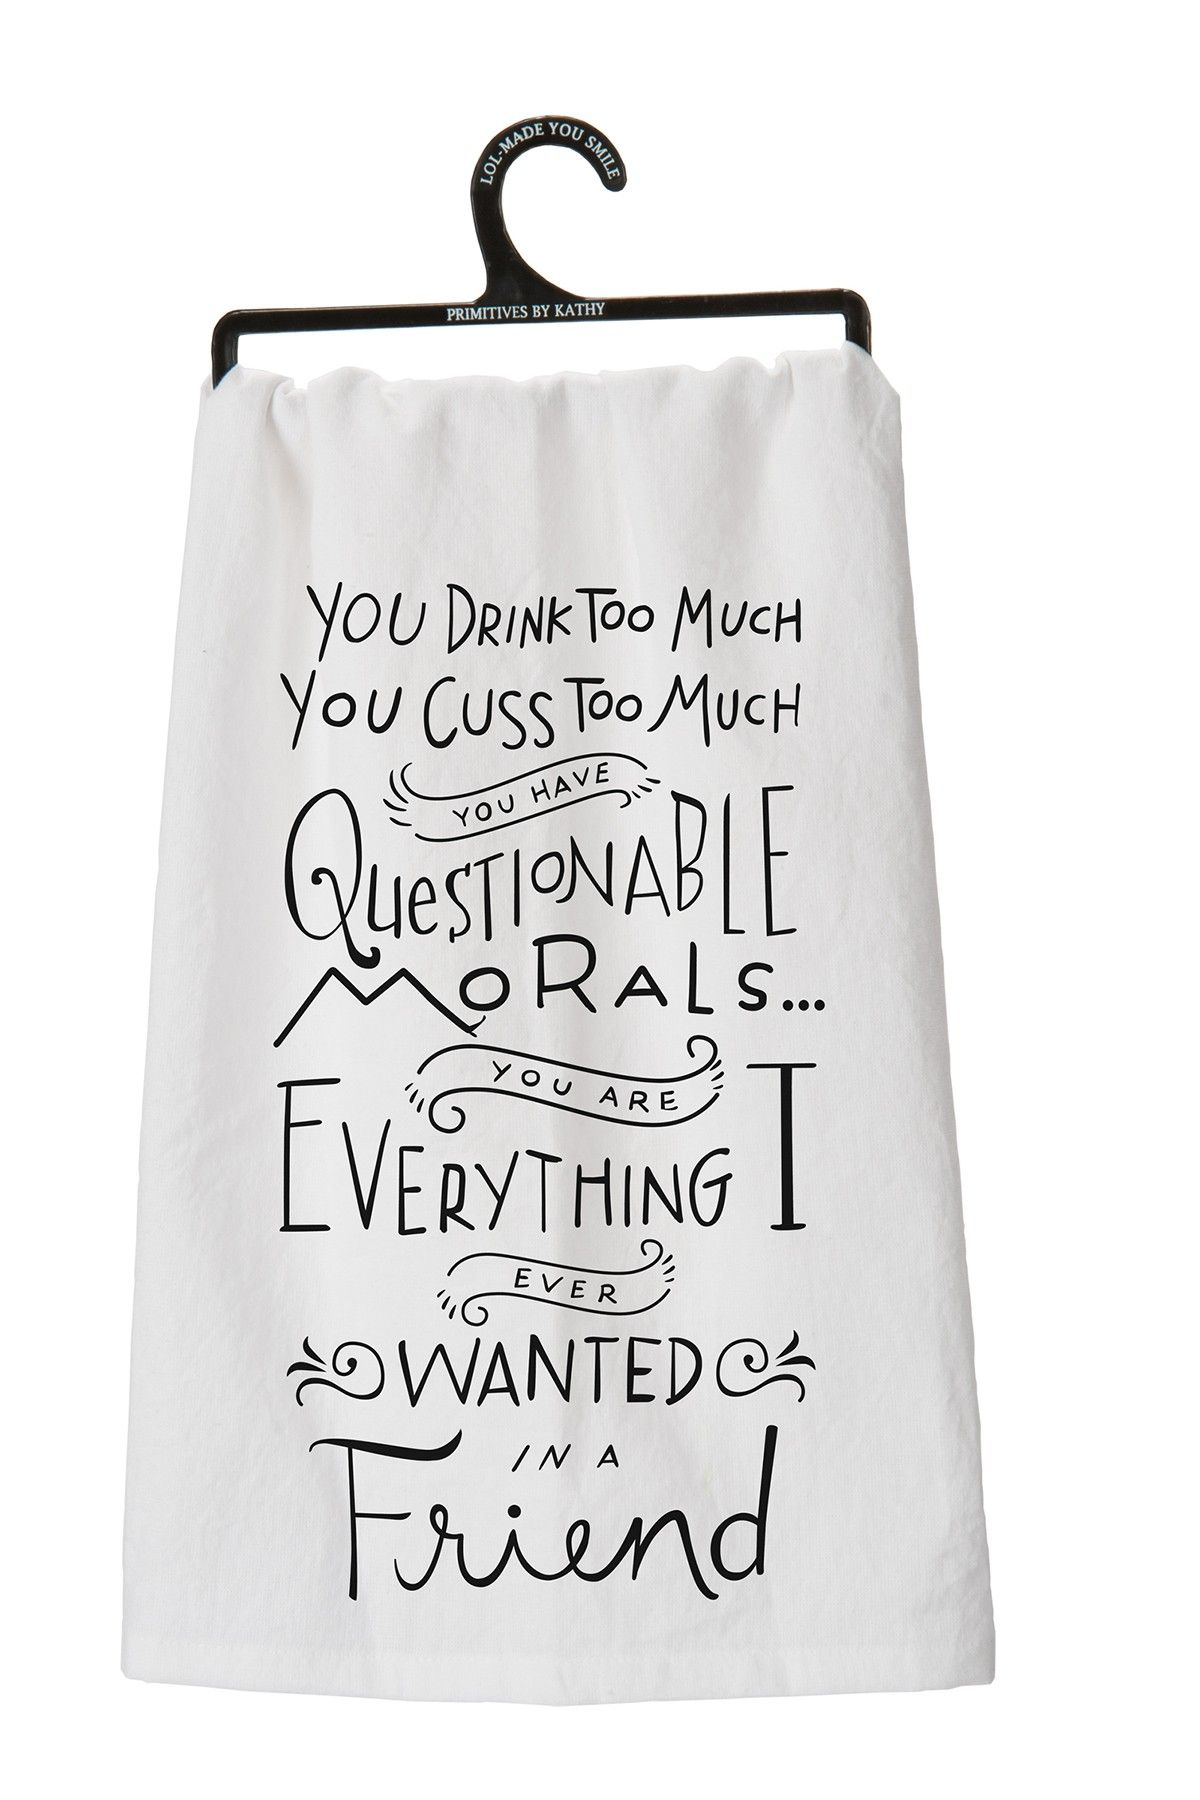 Who invited you?,Tea Towel,Banter Cards,Banter Tea Towel,Funny Gift,Rude Gift,dishcloth,kitchen towel,kitchen decor